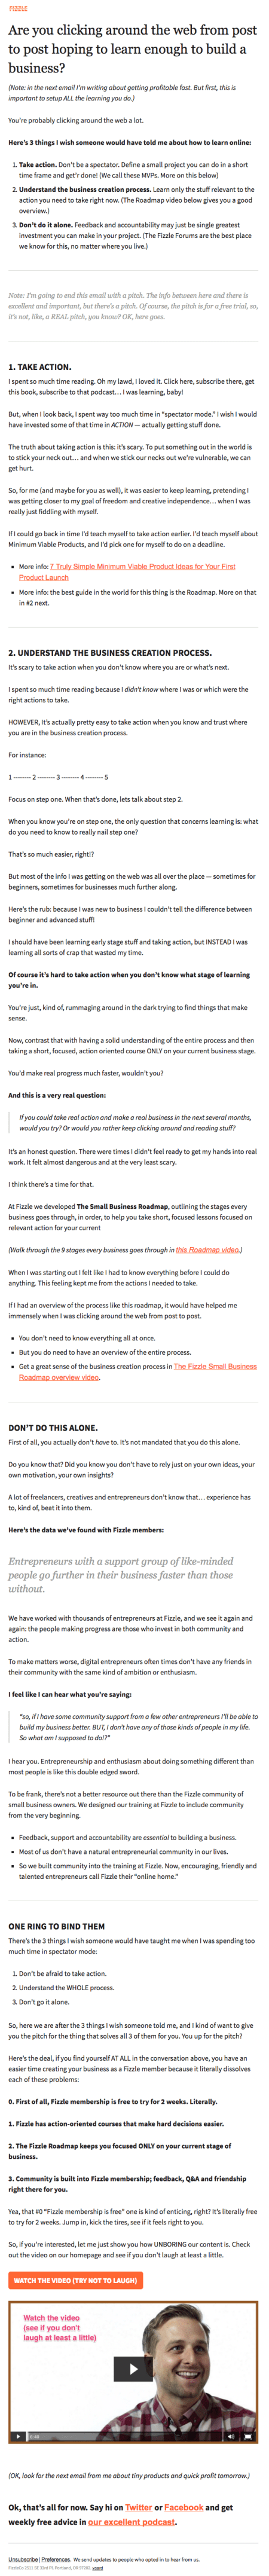 Email Newsletter Example: Fizzle